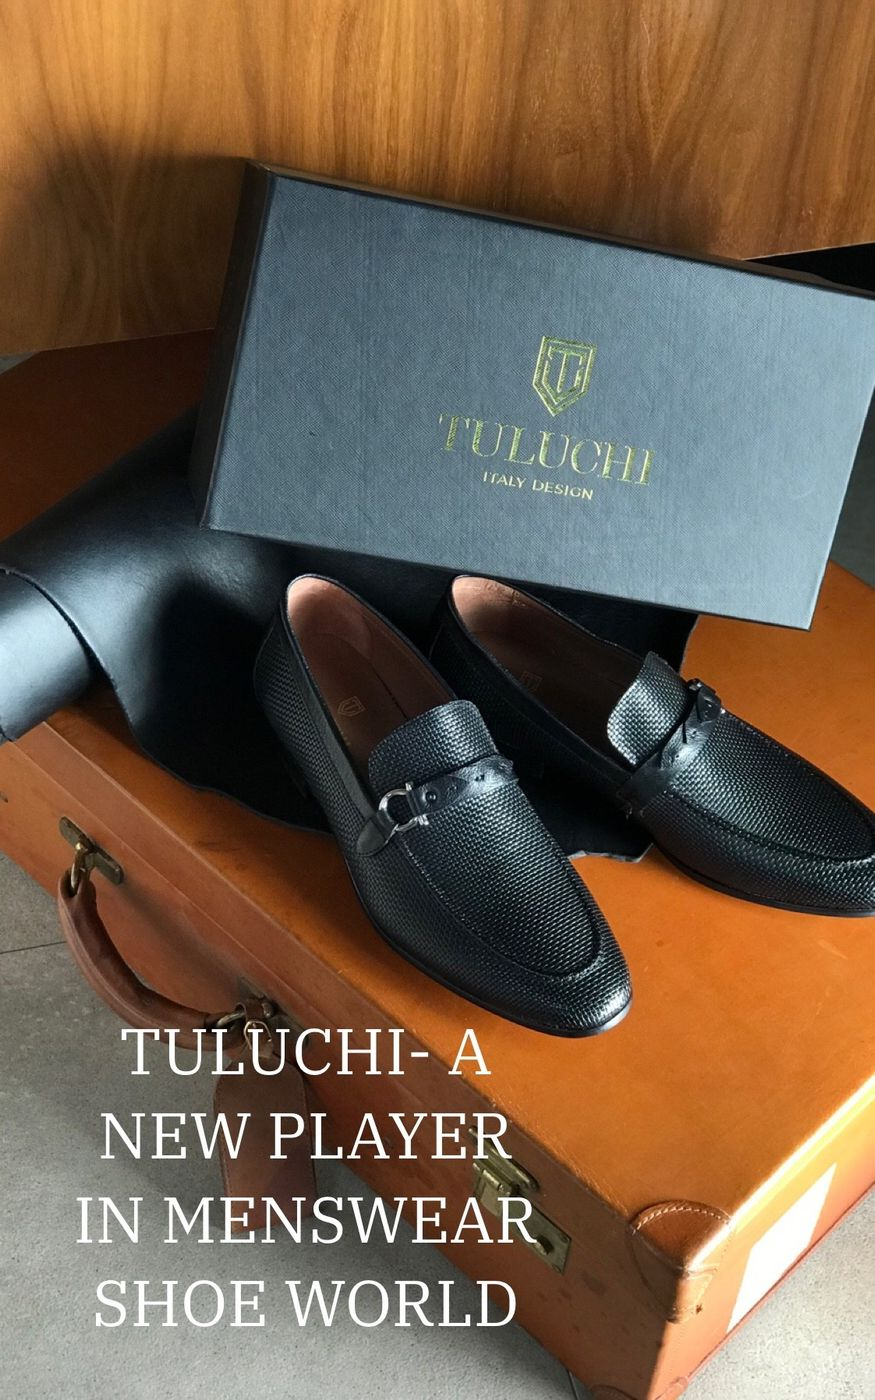 TULUCHI - A NEW, CLASSY CHIC AND ELEGANT AFFORDABLE SHOE BRAND